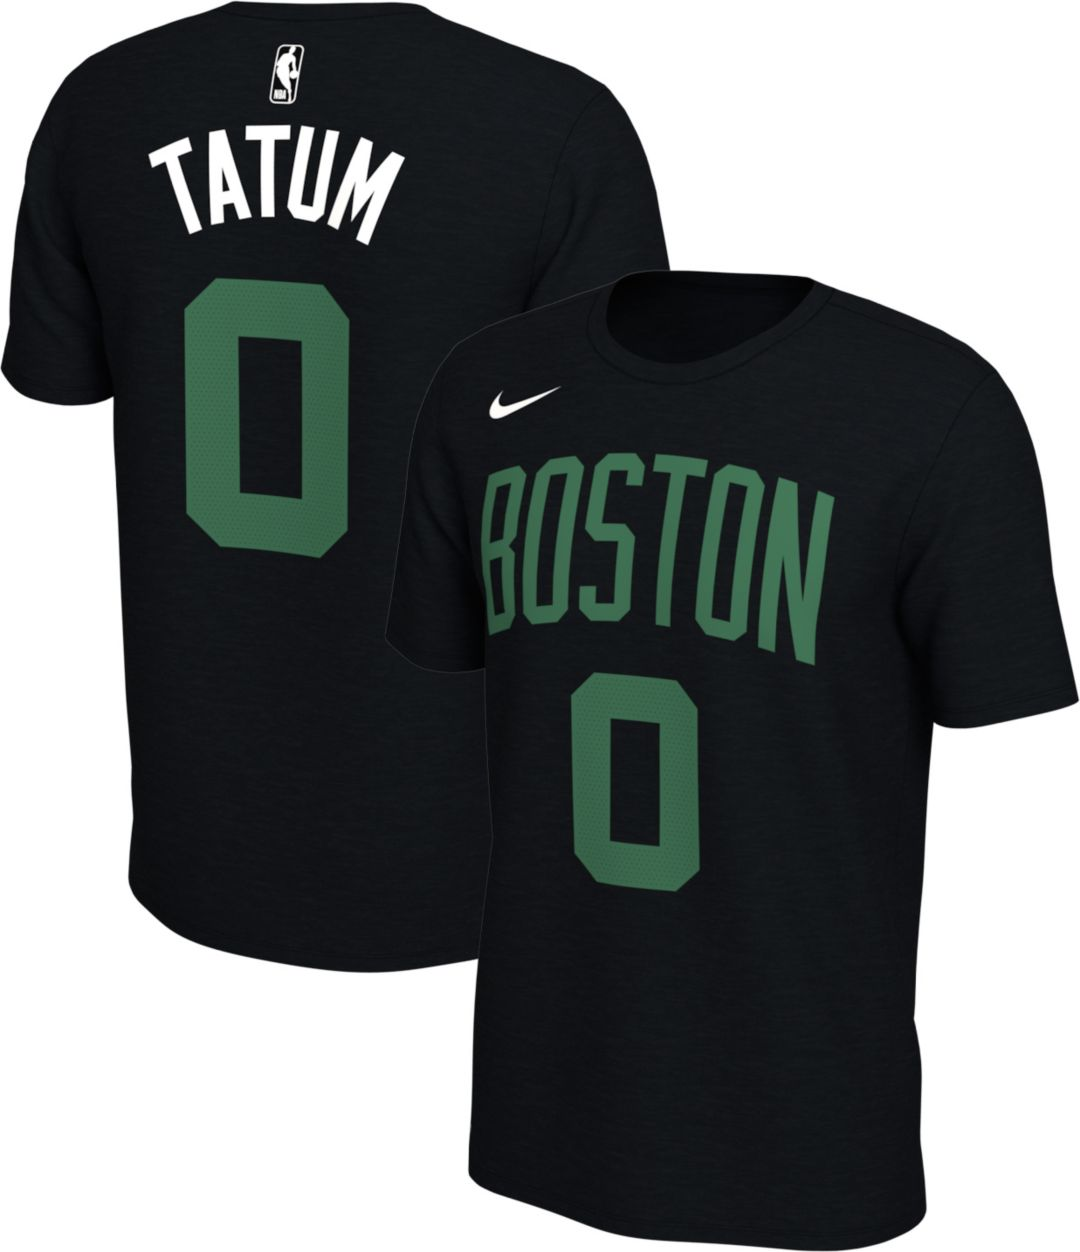 new style 24b03 5b731 Nike Men's Boston Celtics Jayson Tatum #0 Dri-FIT Black T-Shirt